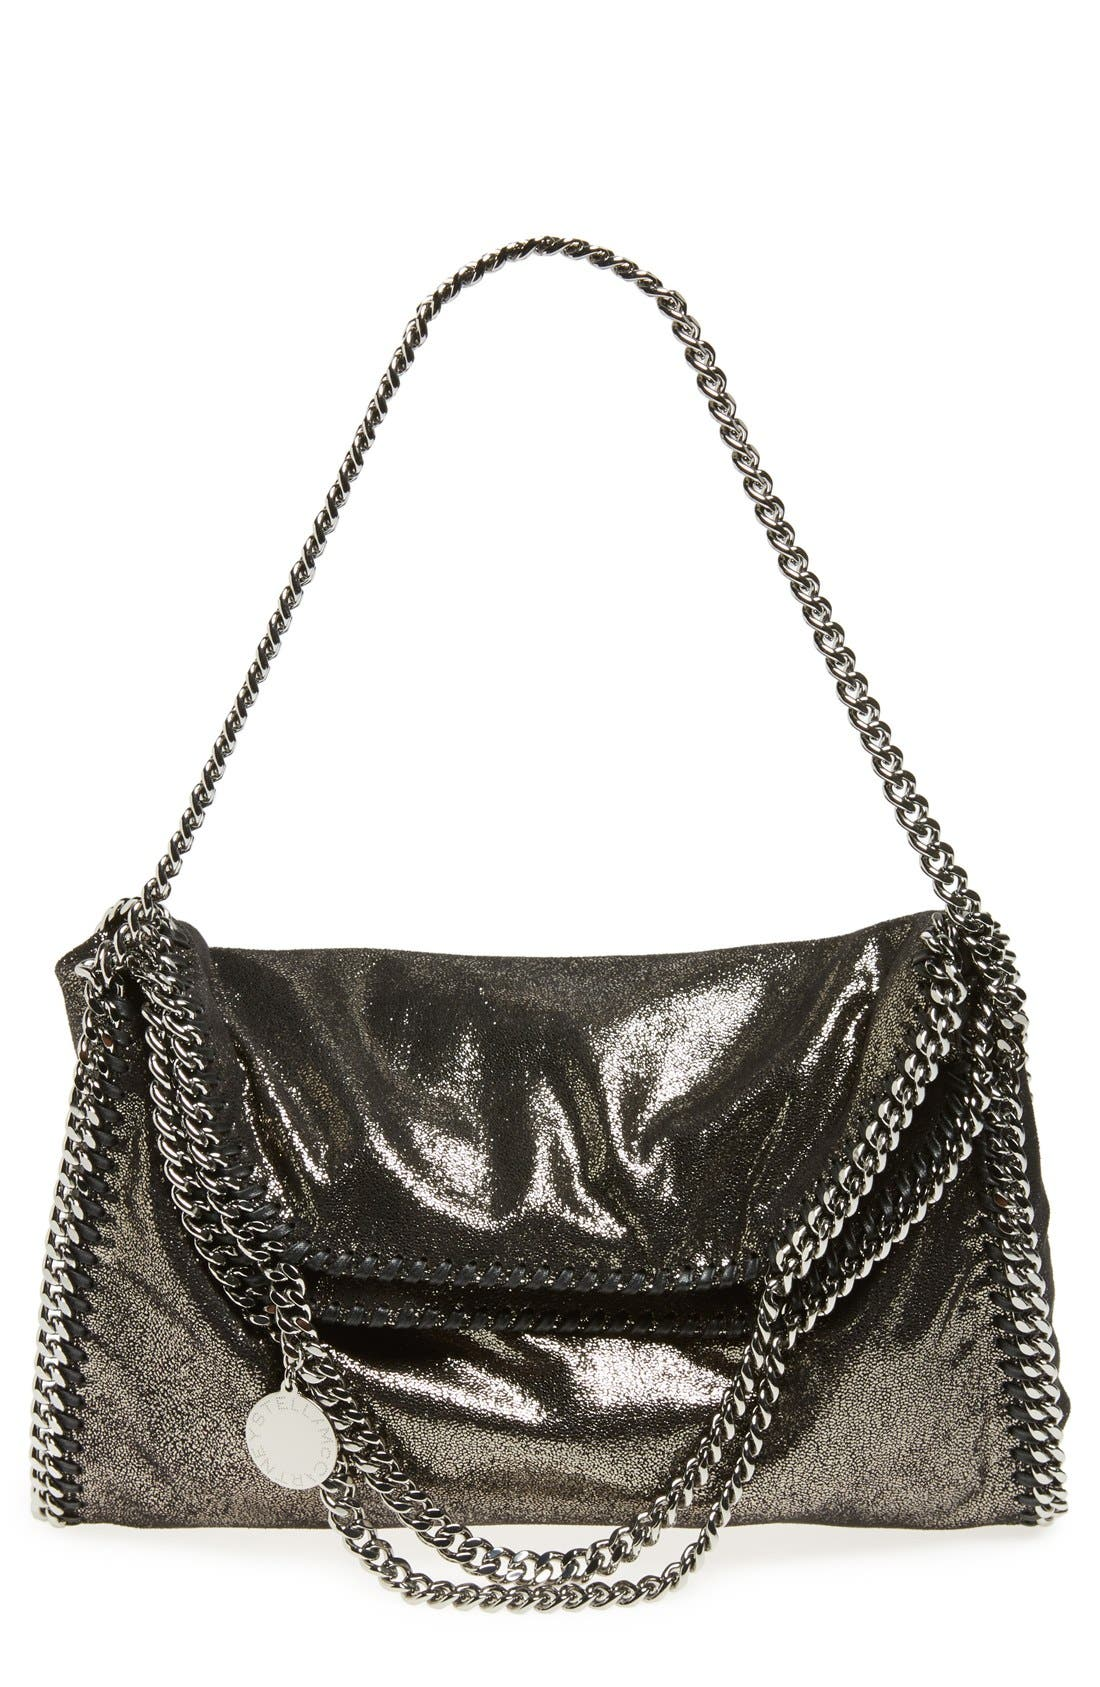 Alternate Image 1 Selected - Stella McCartney 'Falabella' Metallic Foldover Tote